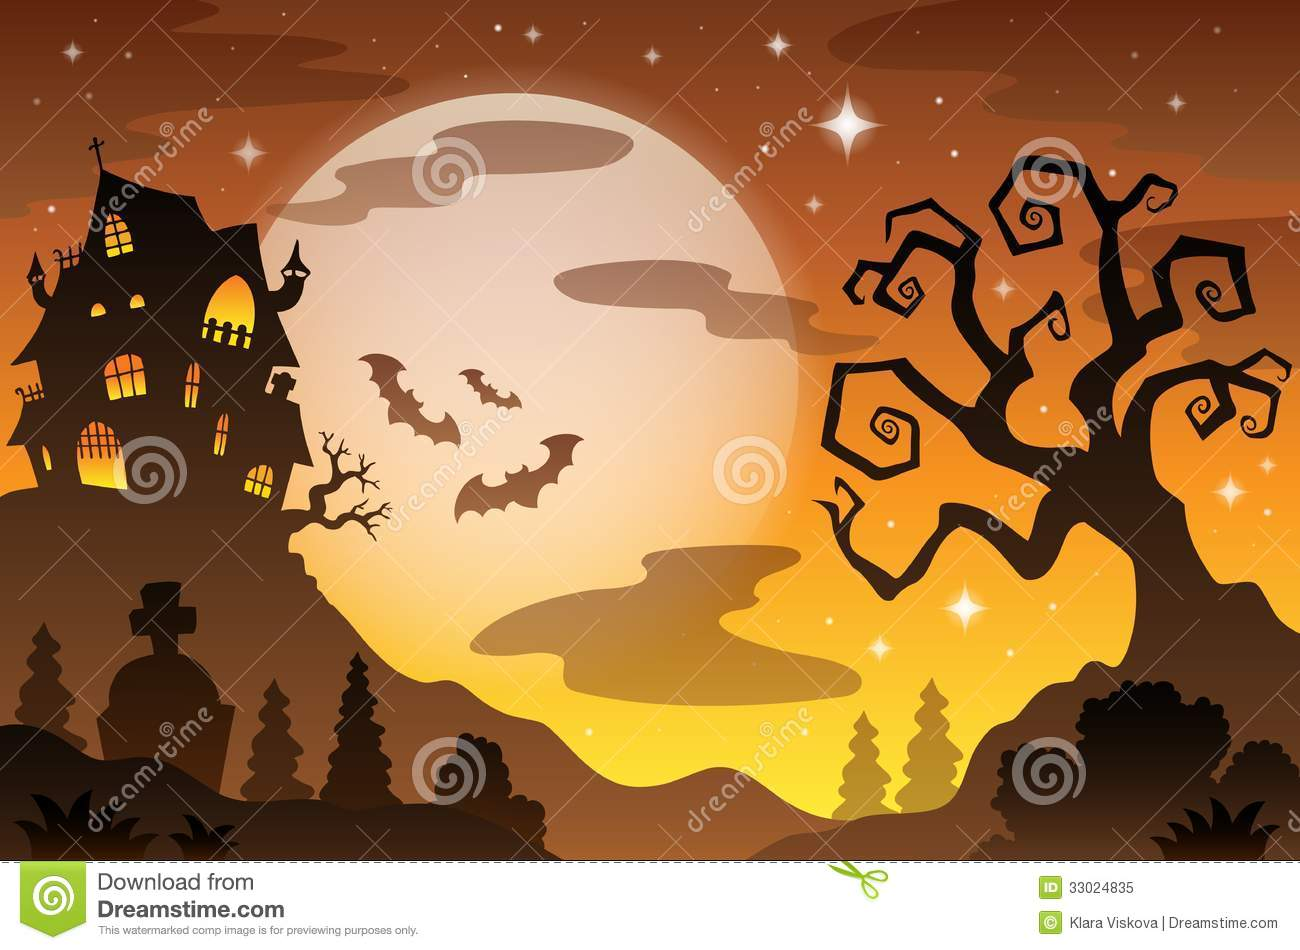 Halloween topic background 2 - eps10 vector illustration.